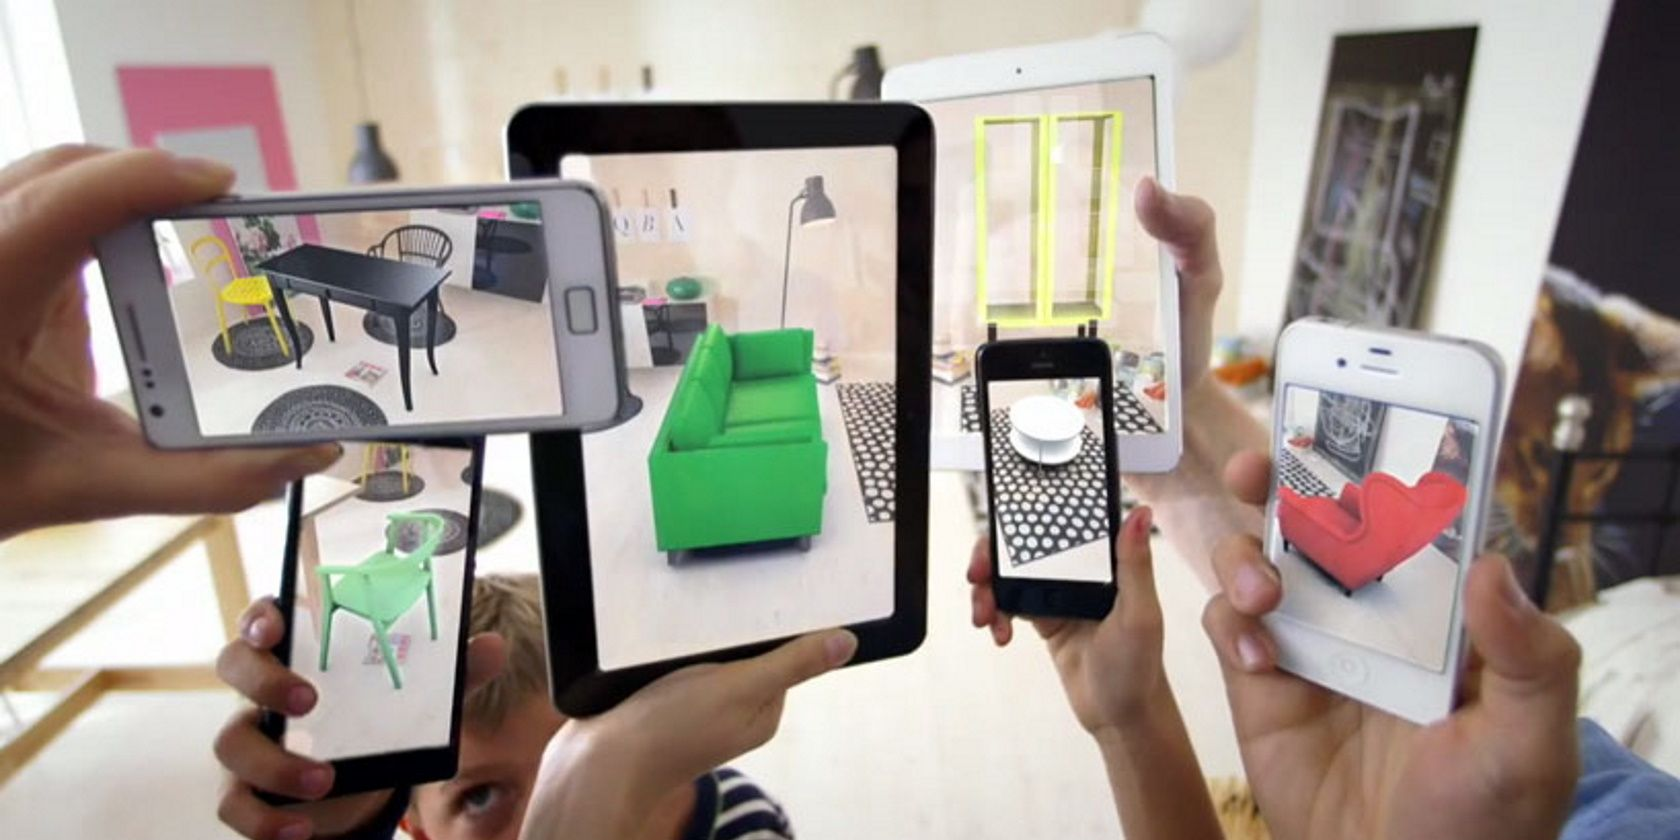 10 Cool Applications of AR Technology in Everyday Life